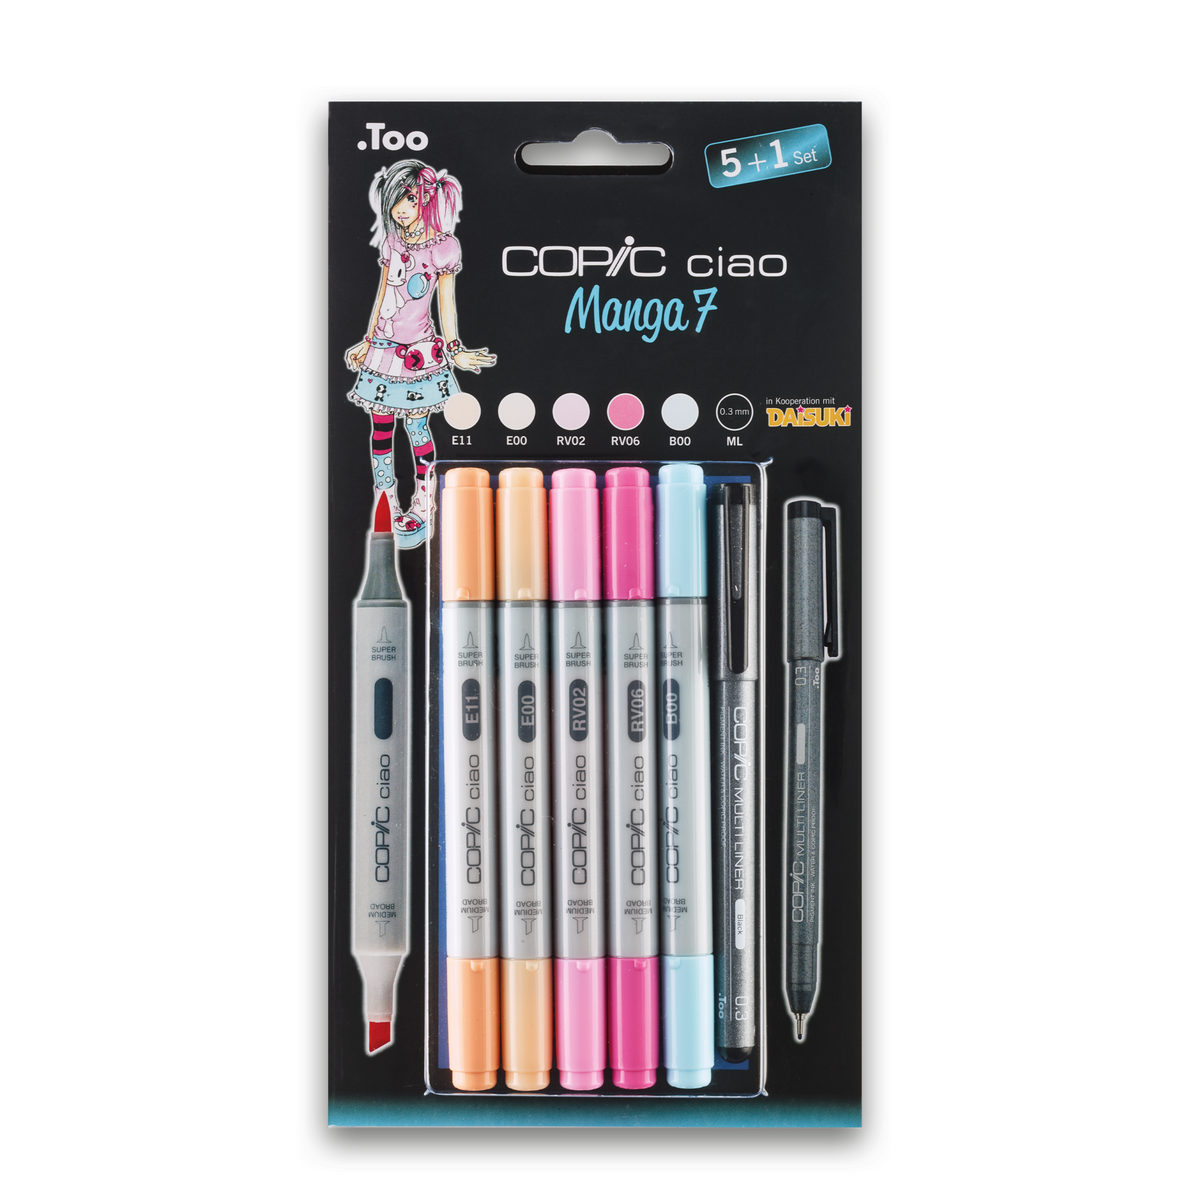 COPIC ciao 5+1 Set Manga 7